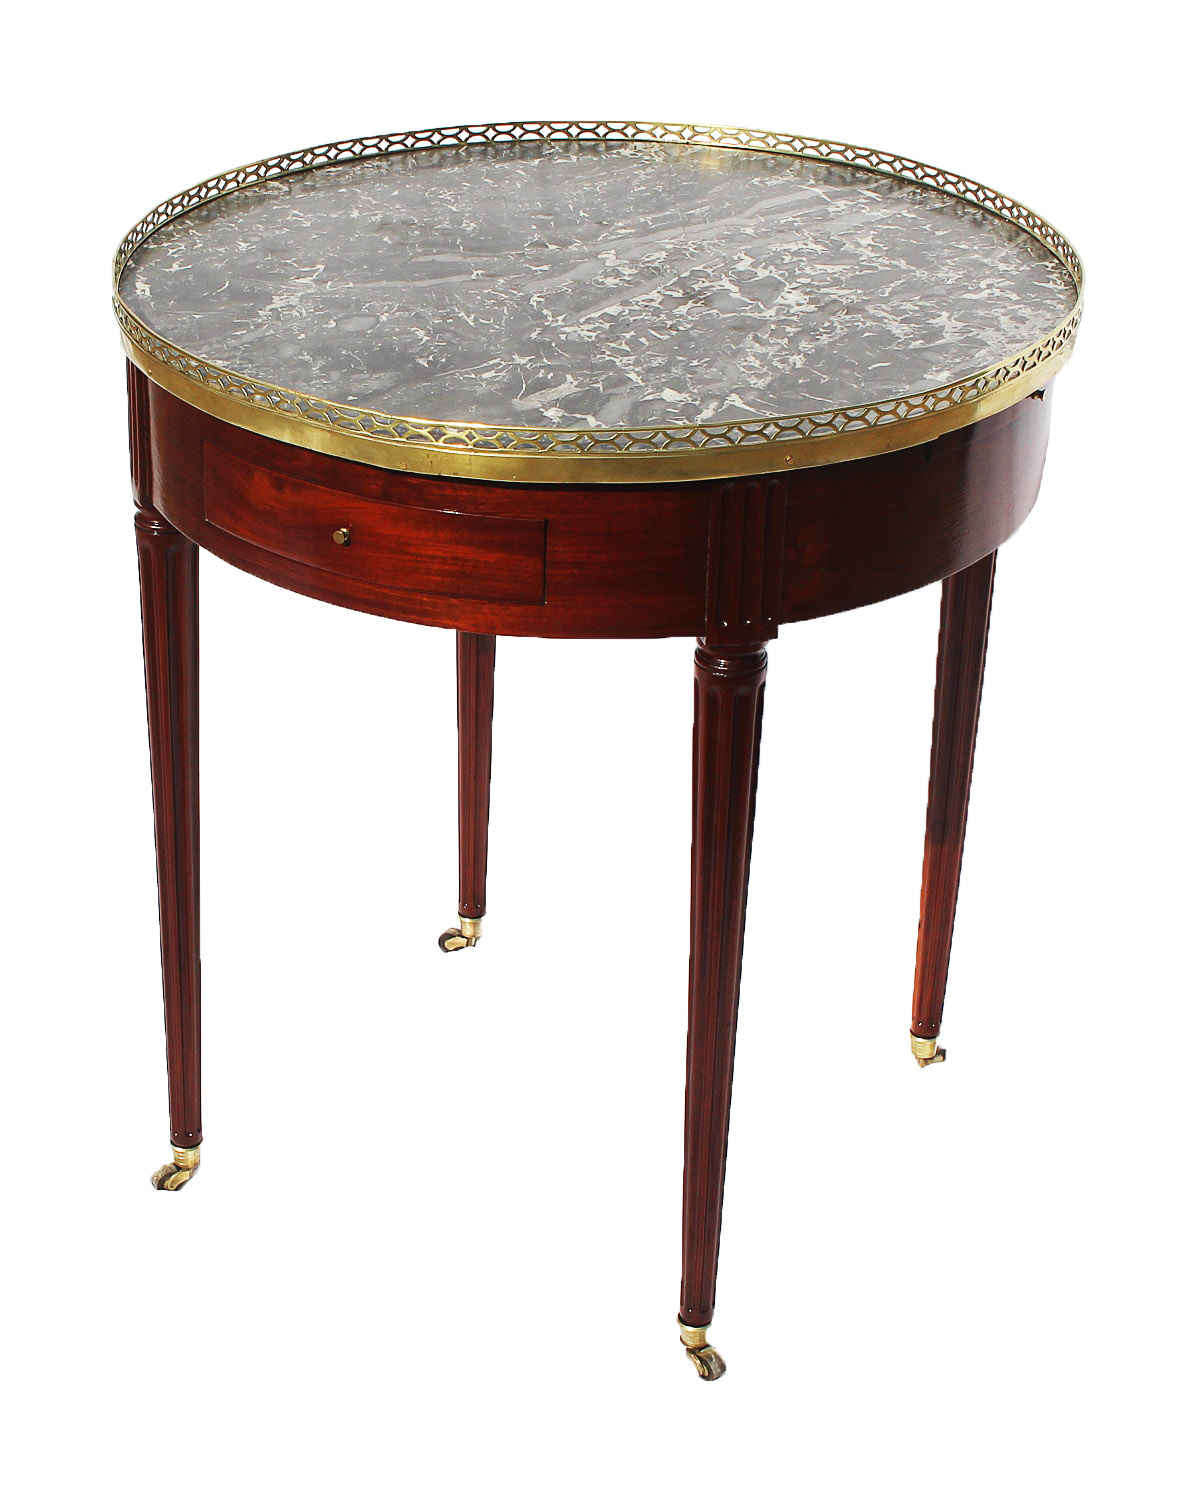 Table Bouillotte d epoque Louis XVI